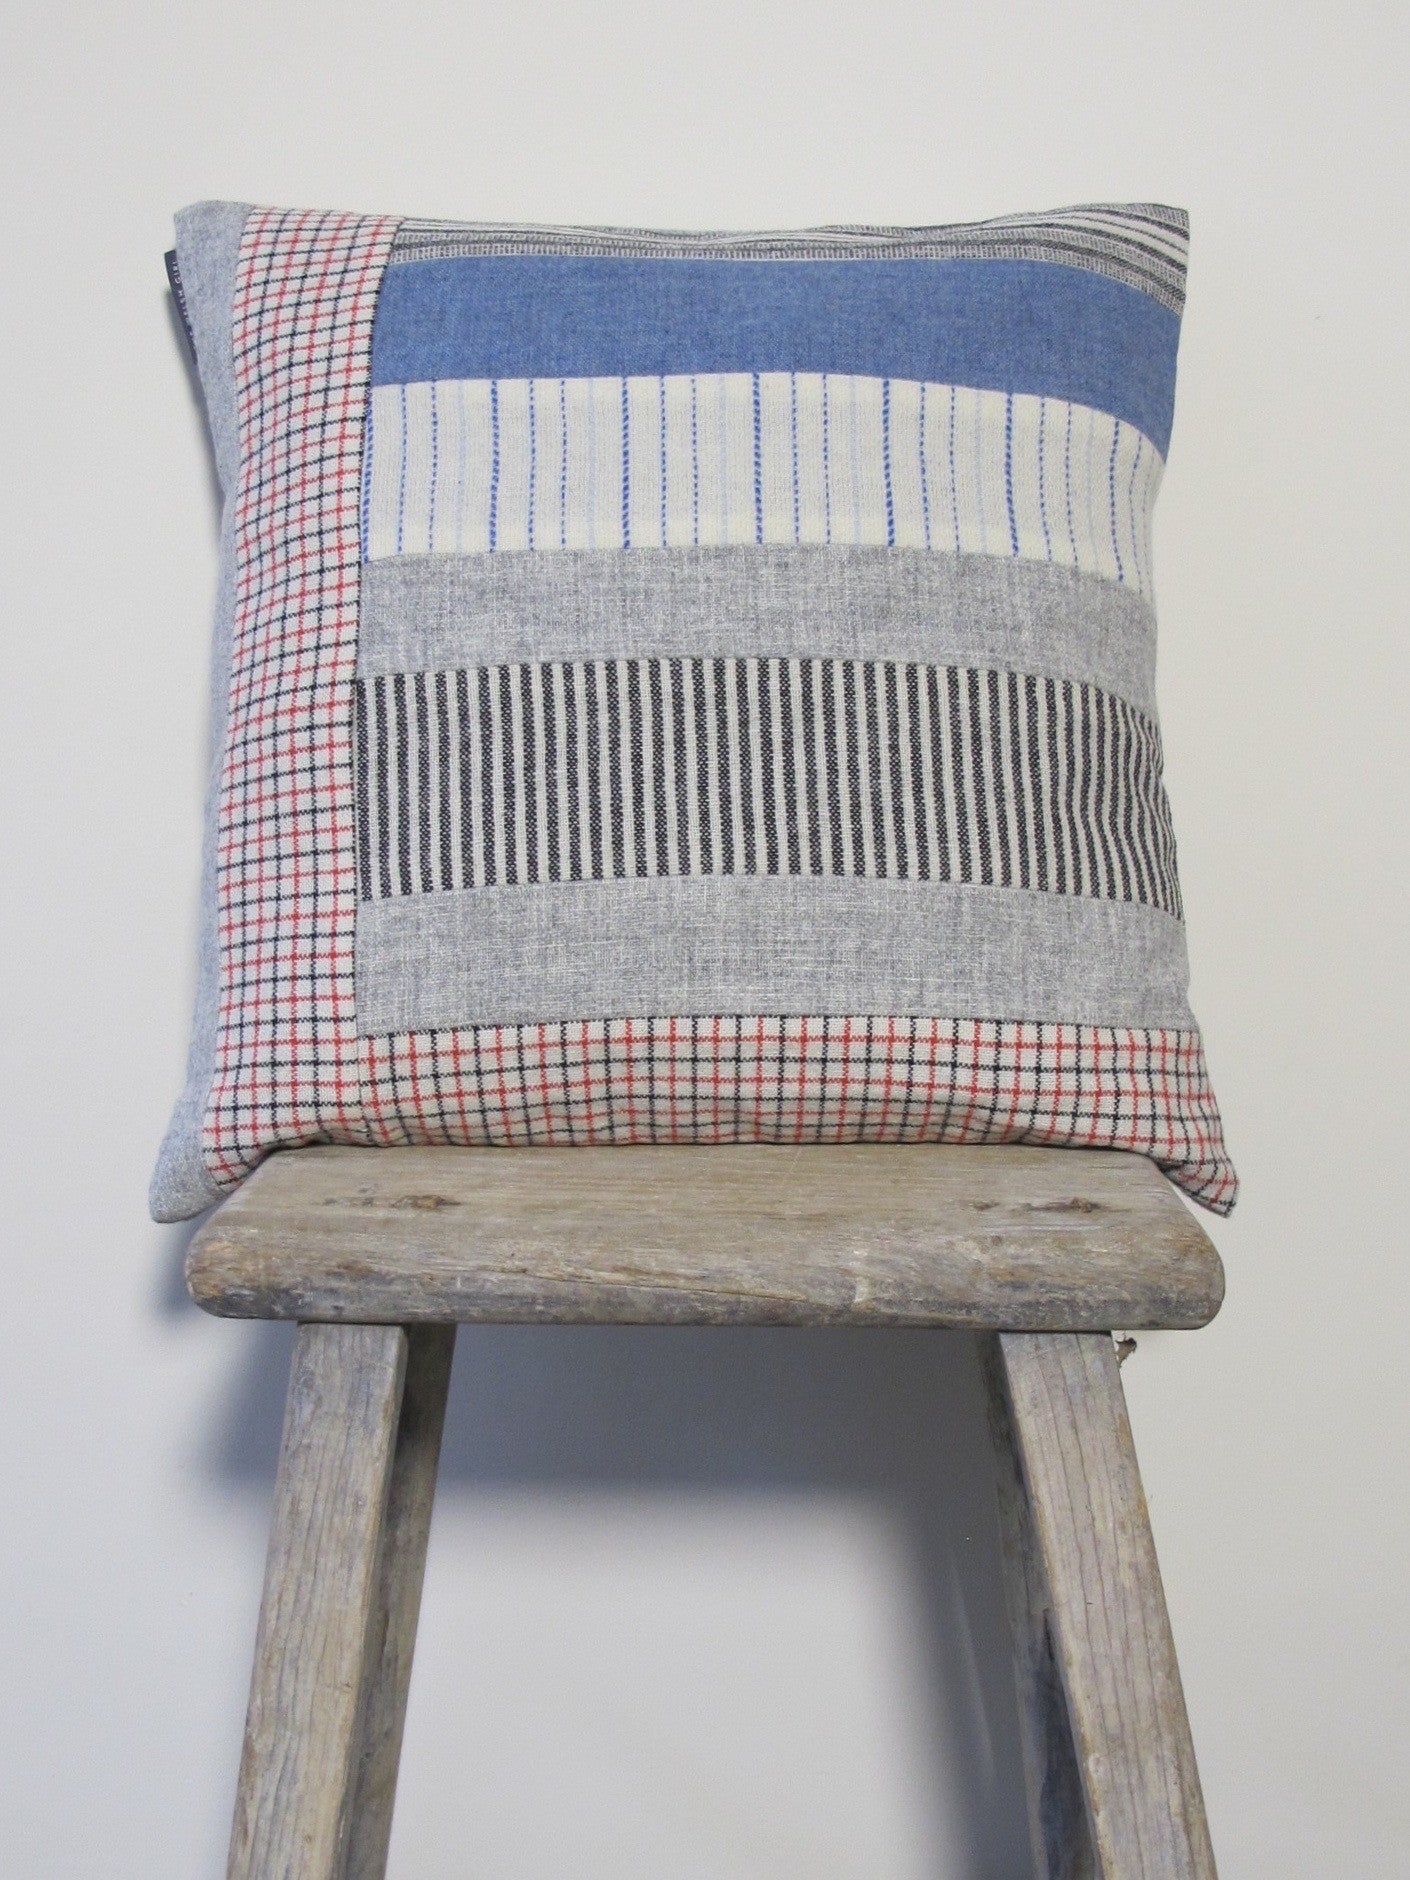 Patchwork Cushion XVI